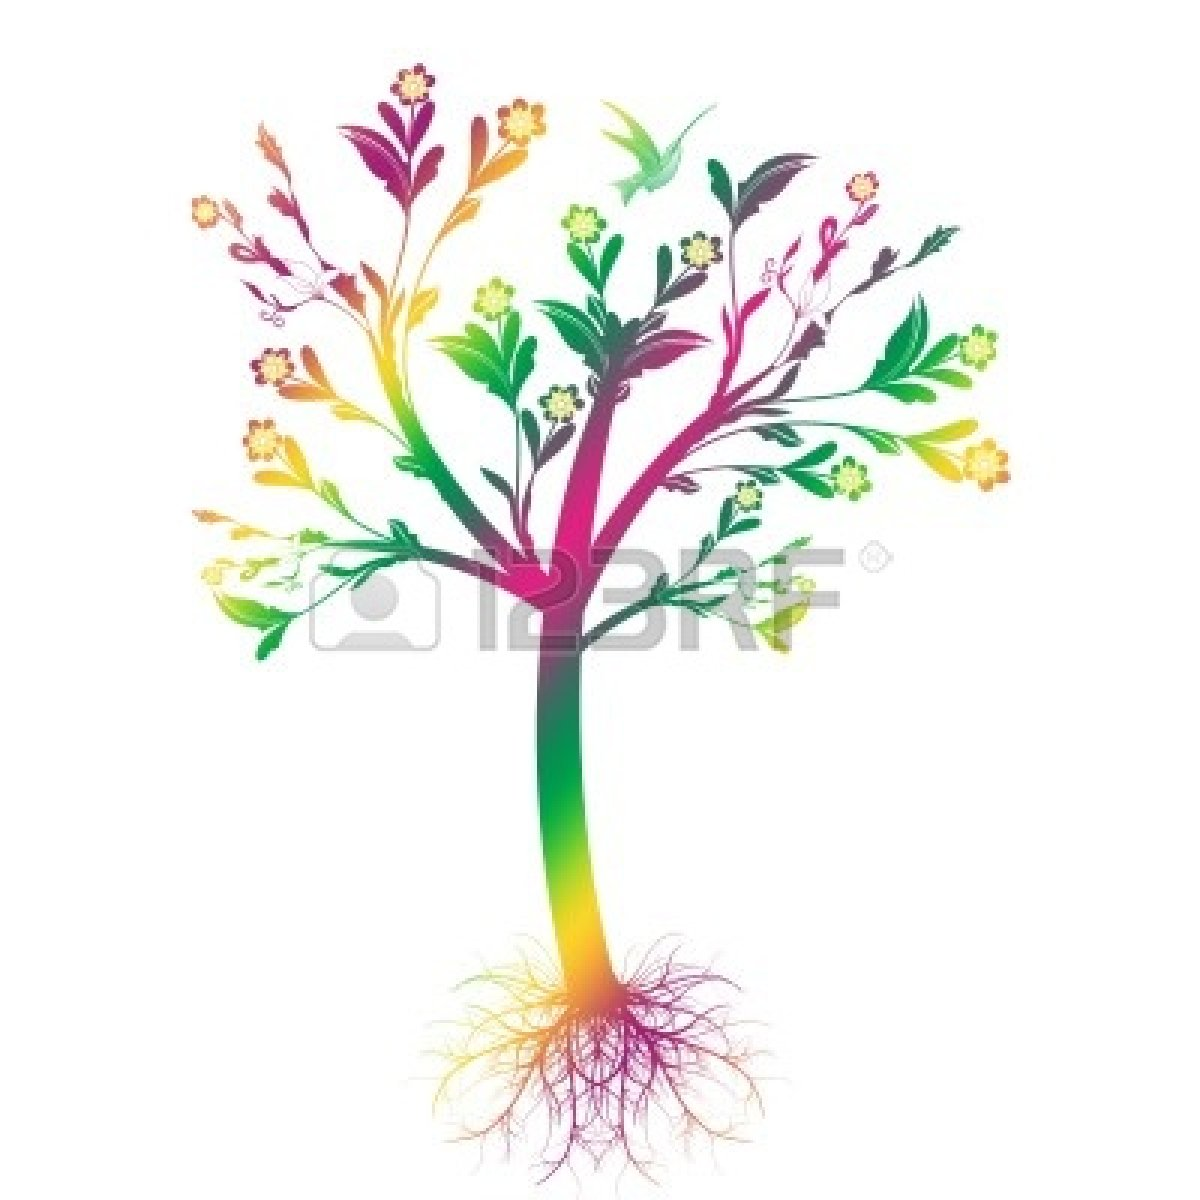 1200x1200 Free Tree With Roots Clipart